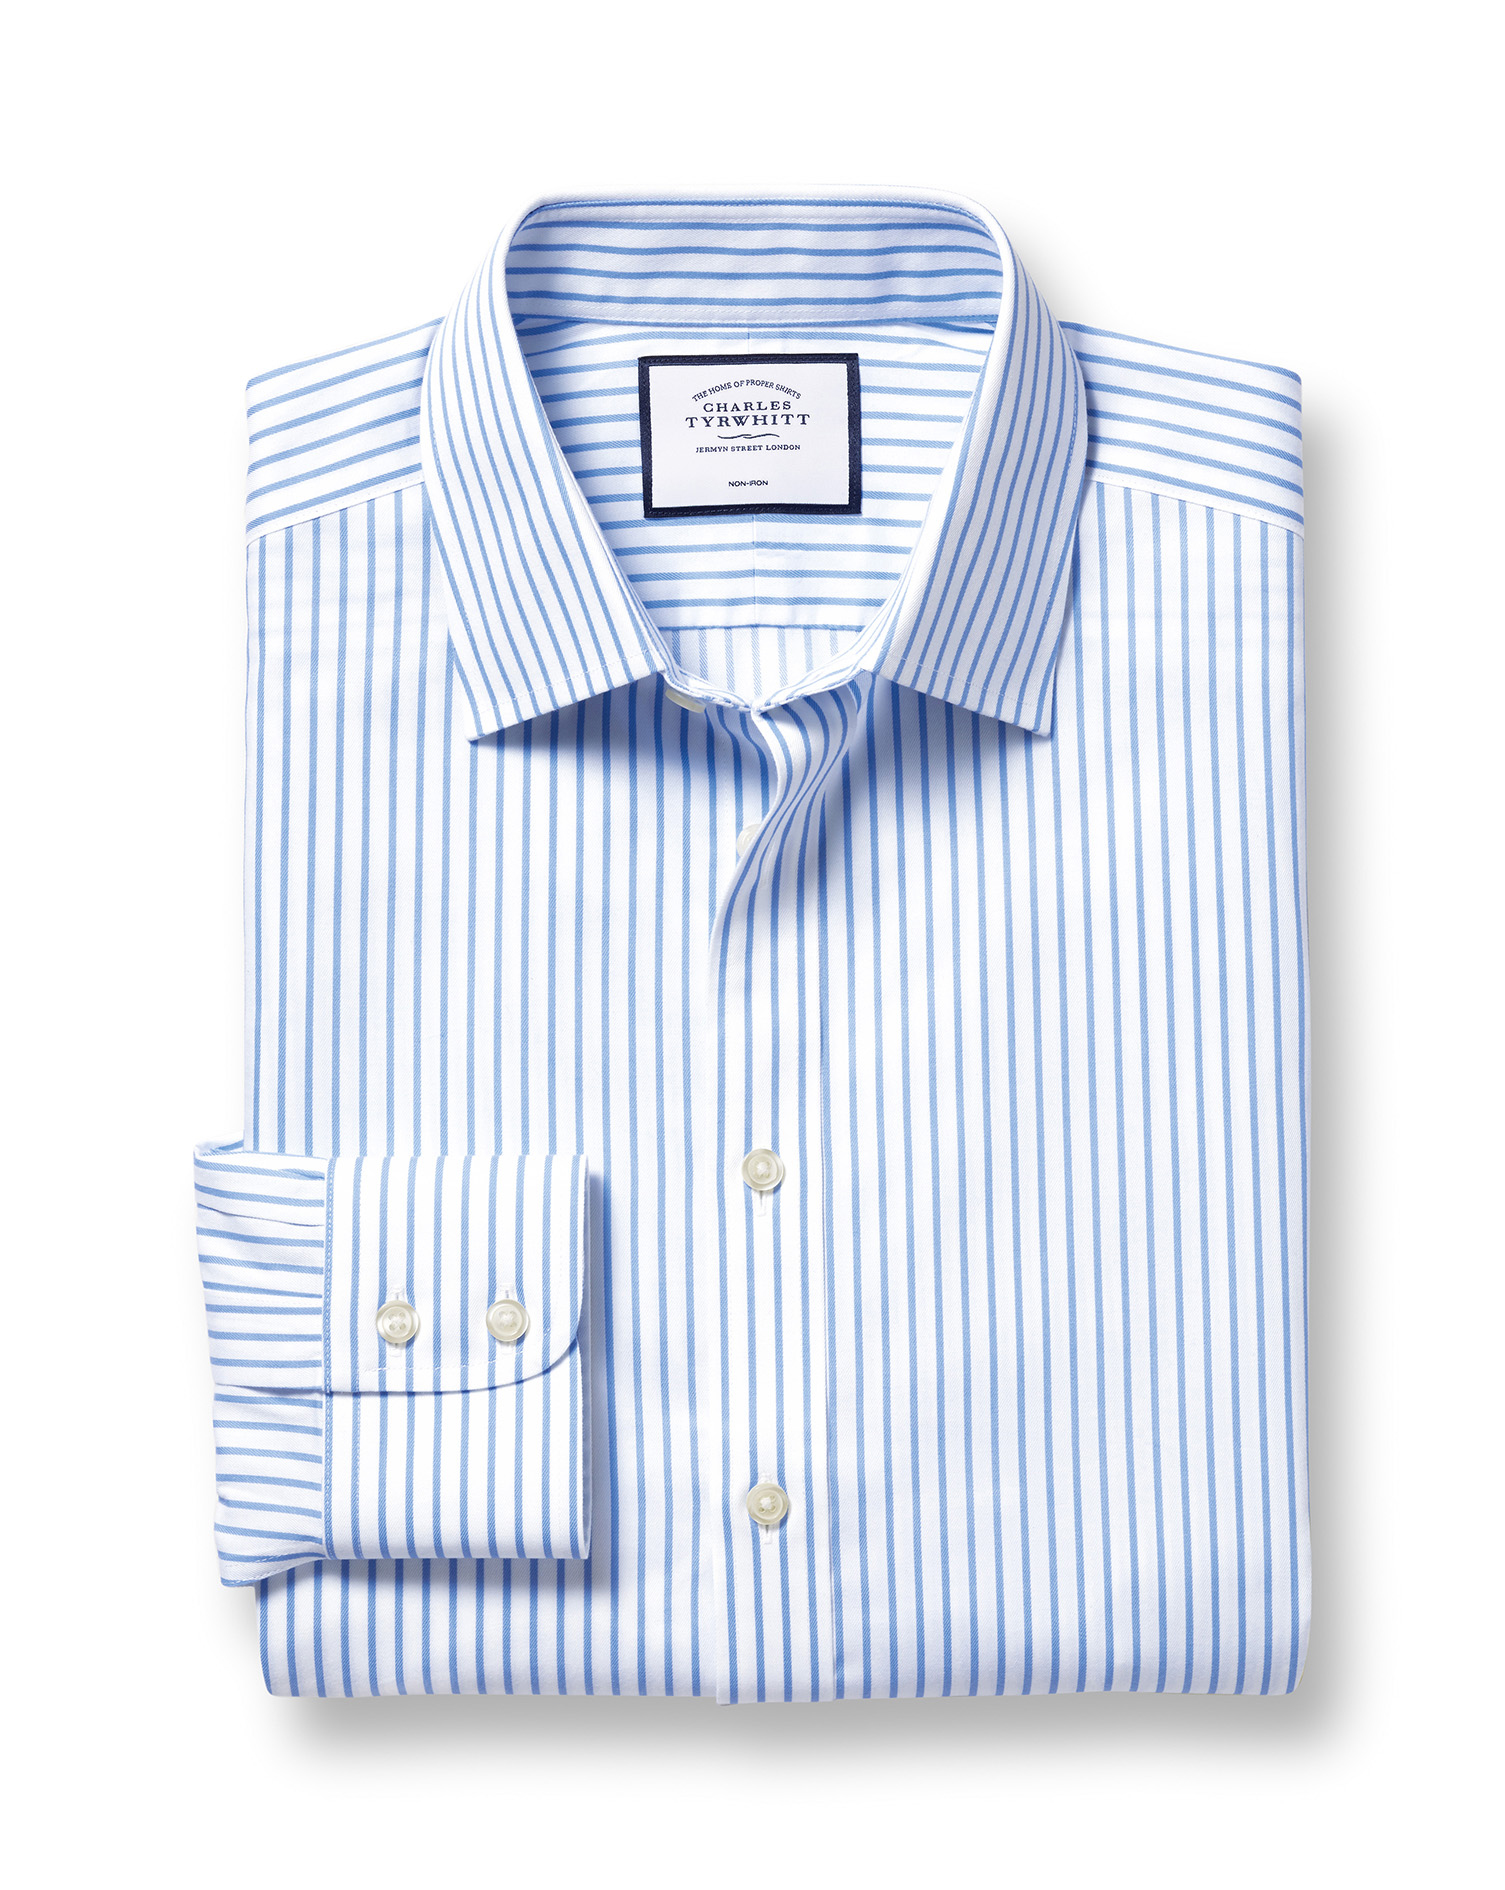 Slim Fit Non-Iron Sky Blue Stripe Twill Cotton Formal Shirt Single Cuff Size 16/35 by Charles Tyrwhi